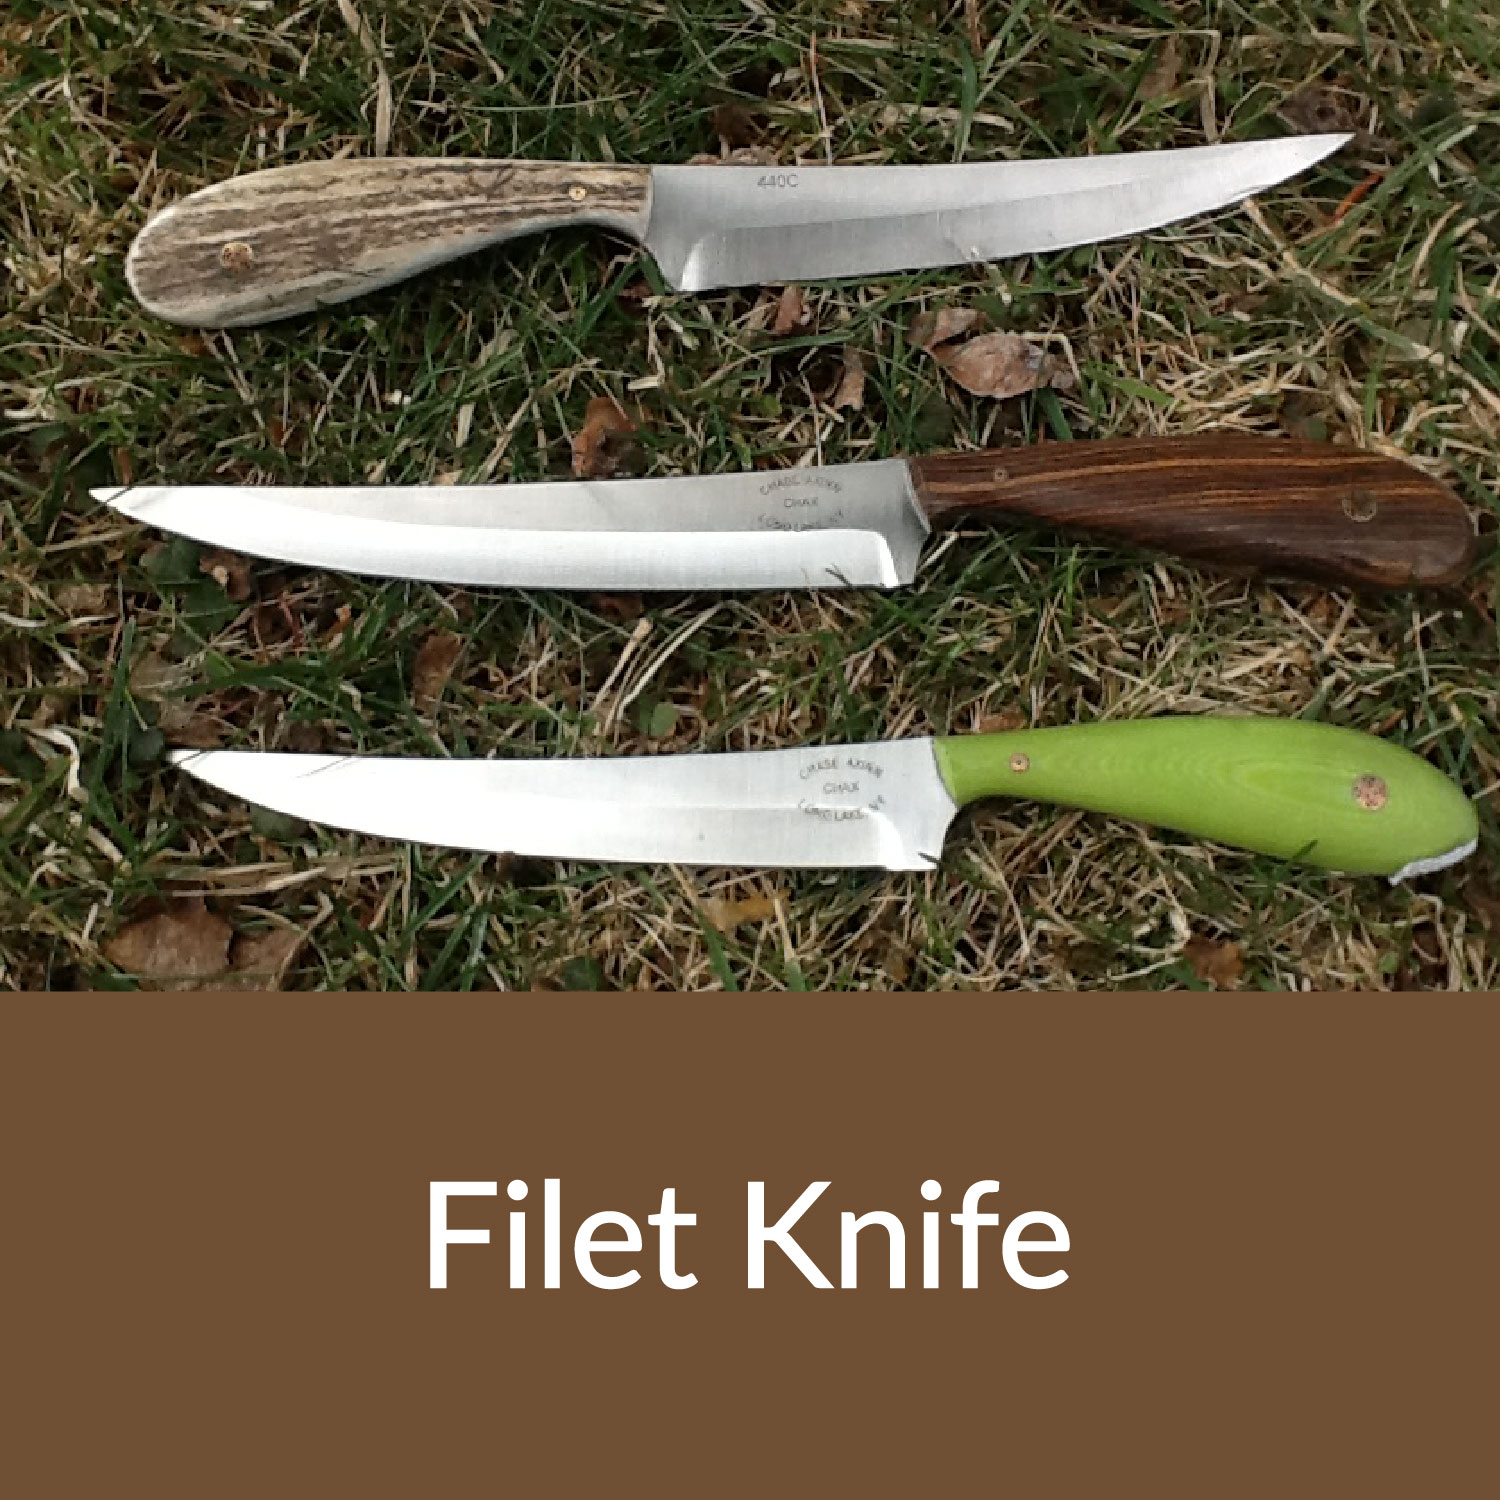 Filet Knife